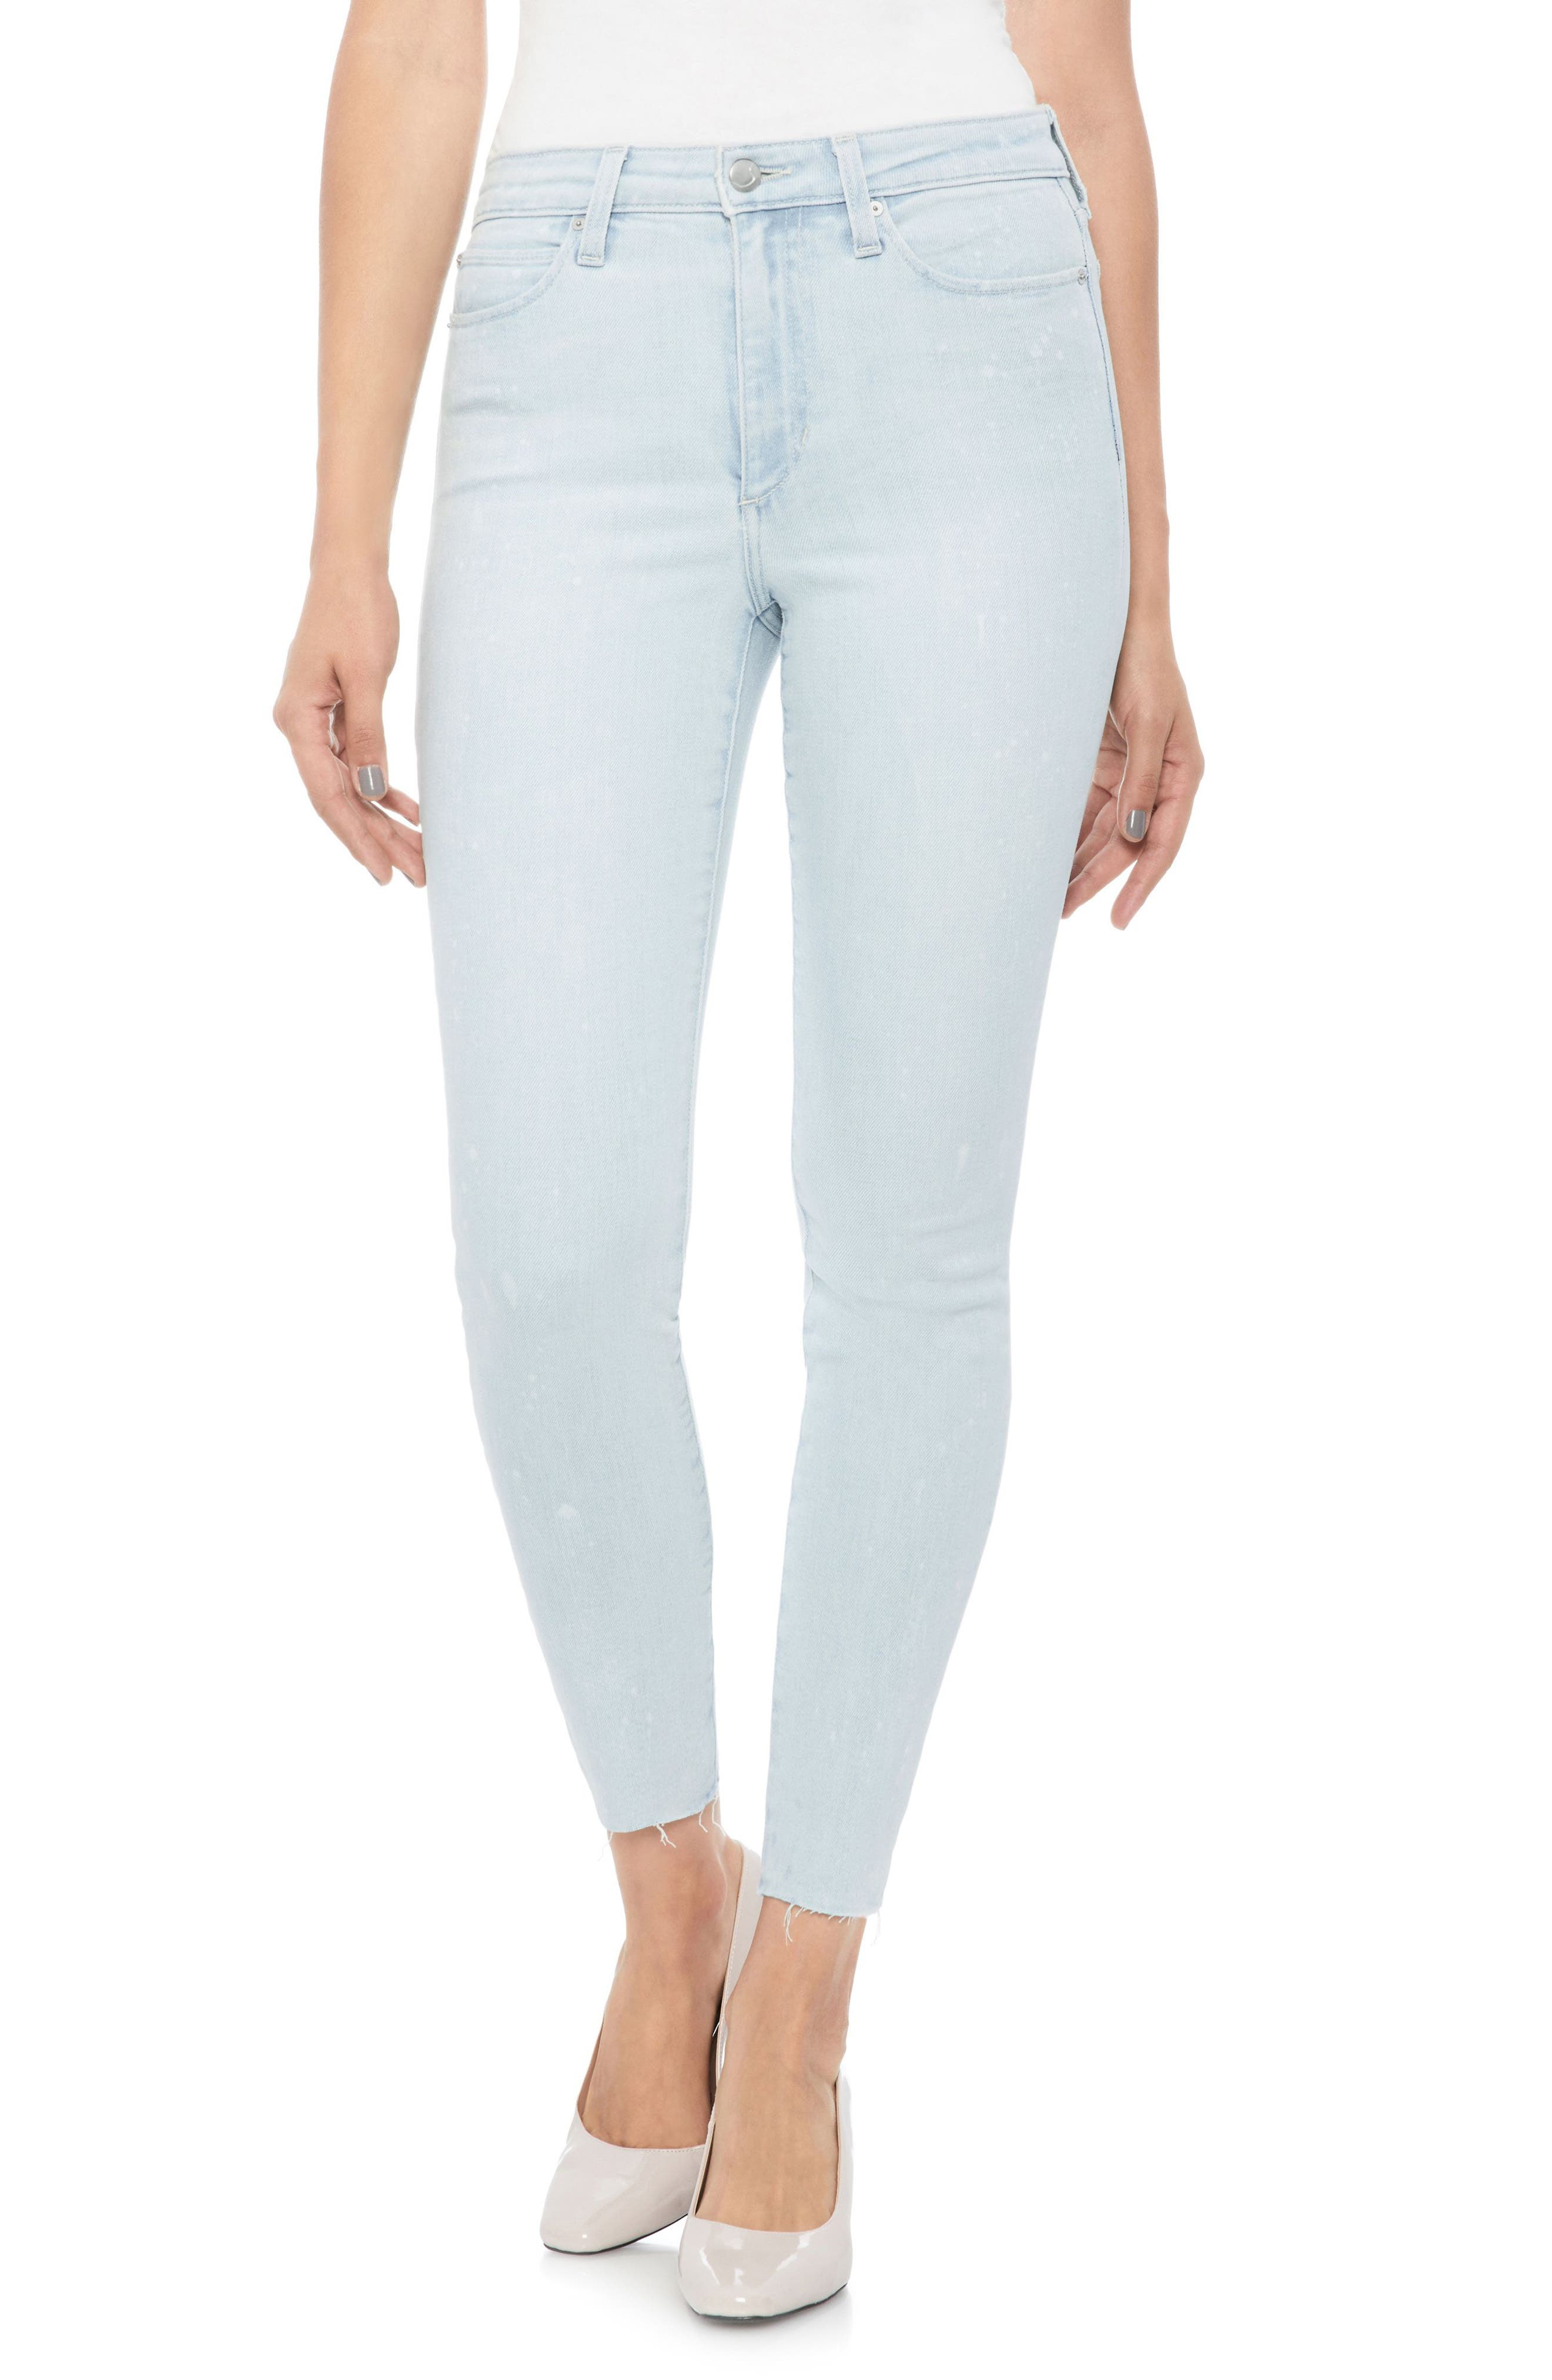 JOE'S,                             Flawless - Charlie High Waist Ankle Skinny Jeans,                             Main thumbnail 1, color,                             450